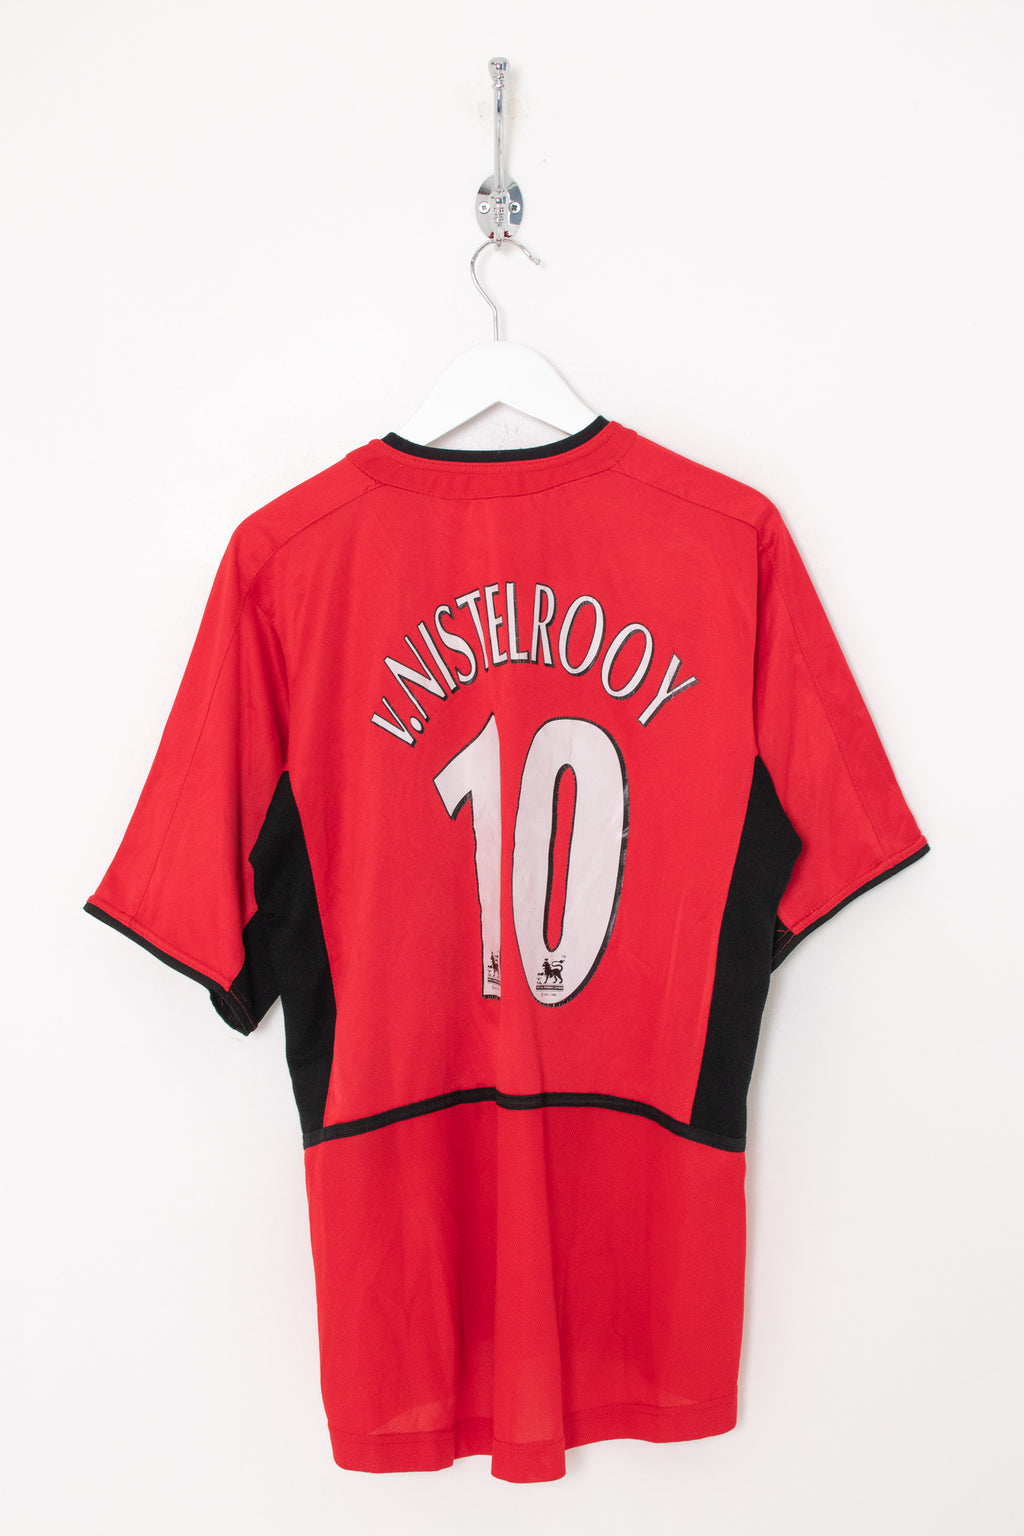 2002 Manchester United Van Nistelrooy Football Shirt (M)